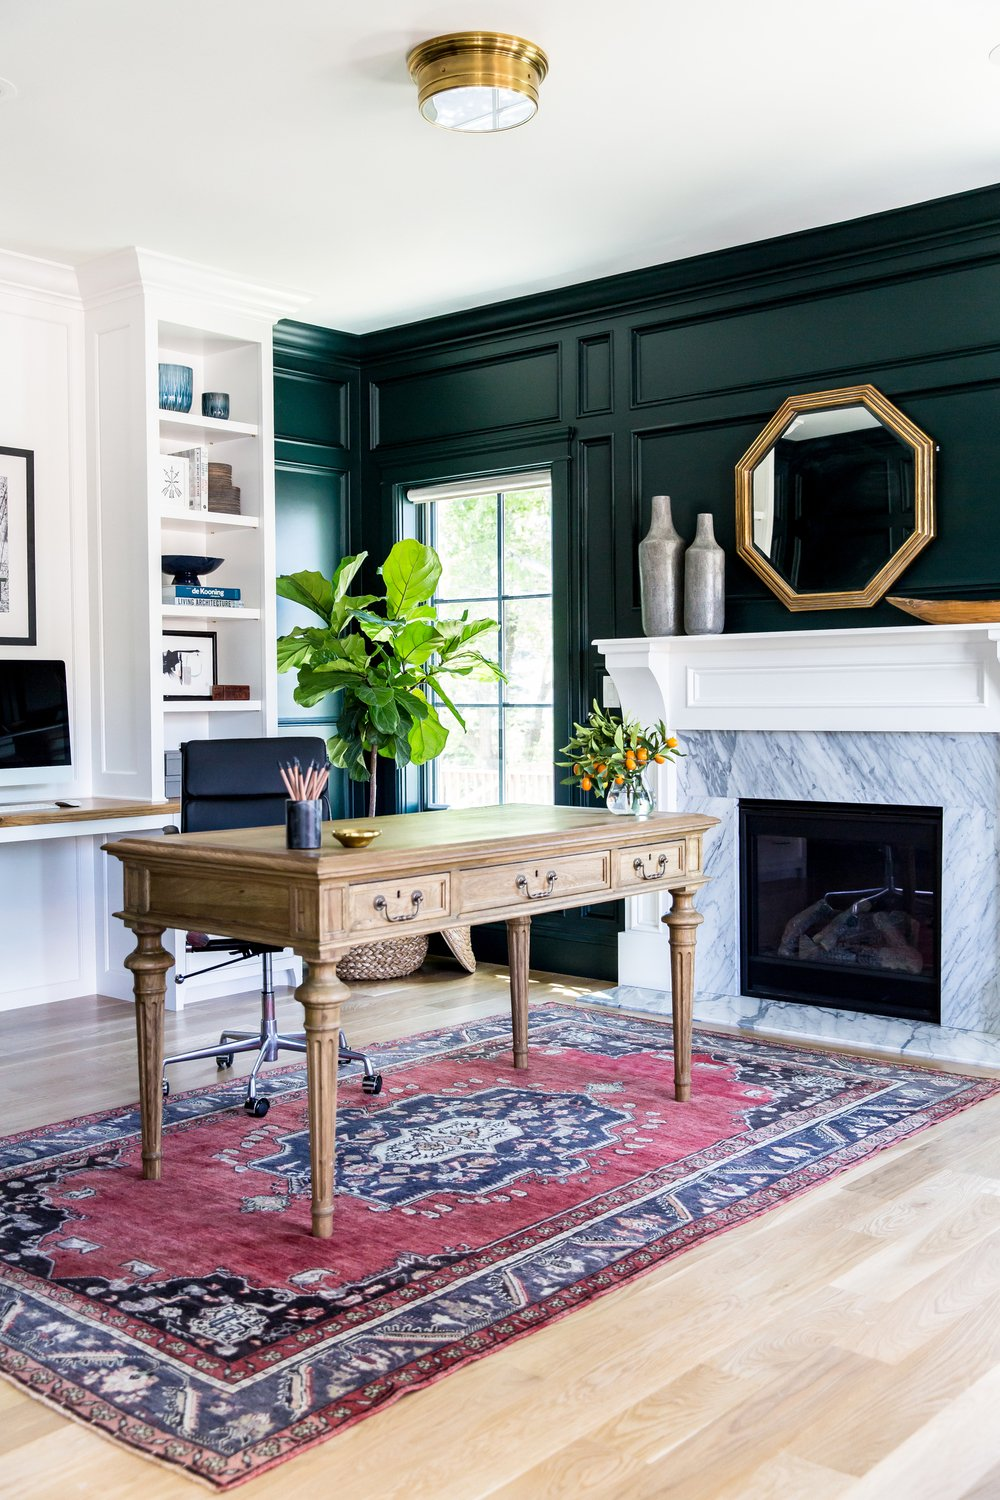 My two cents favorite e designers a thoughtful place - Studio mcgee ...